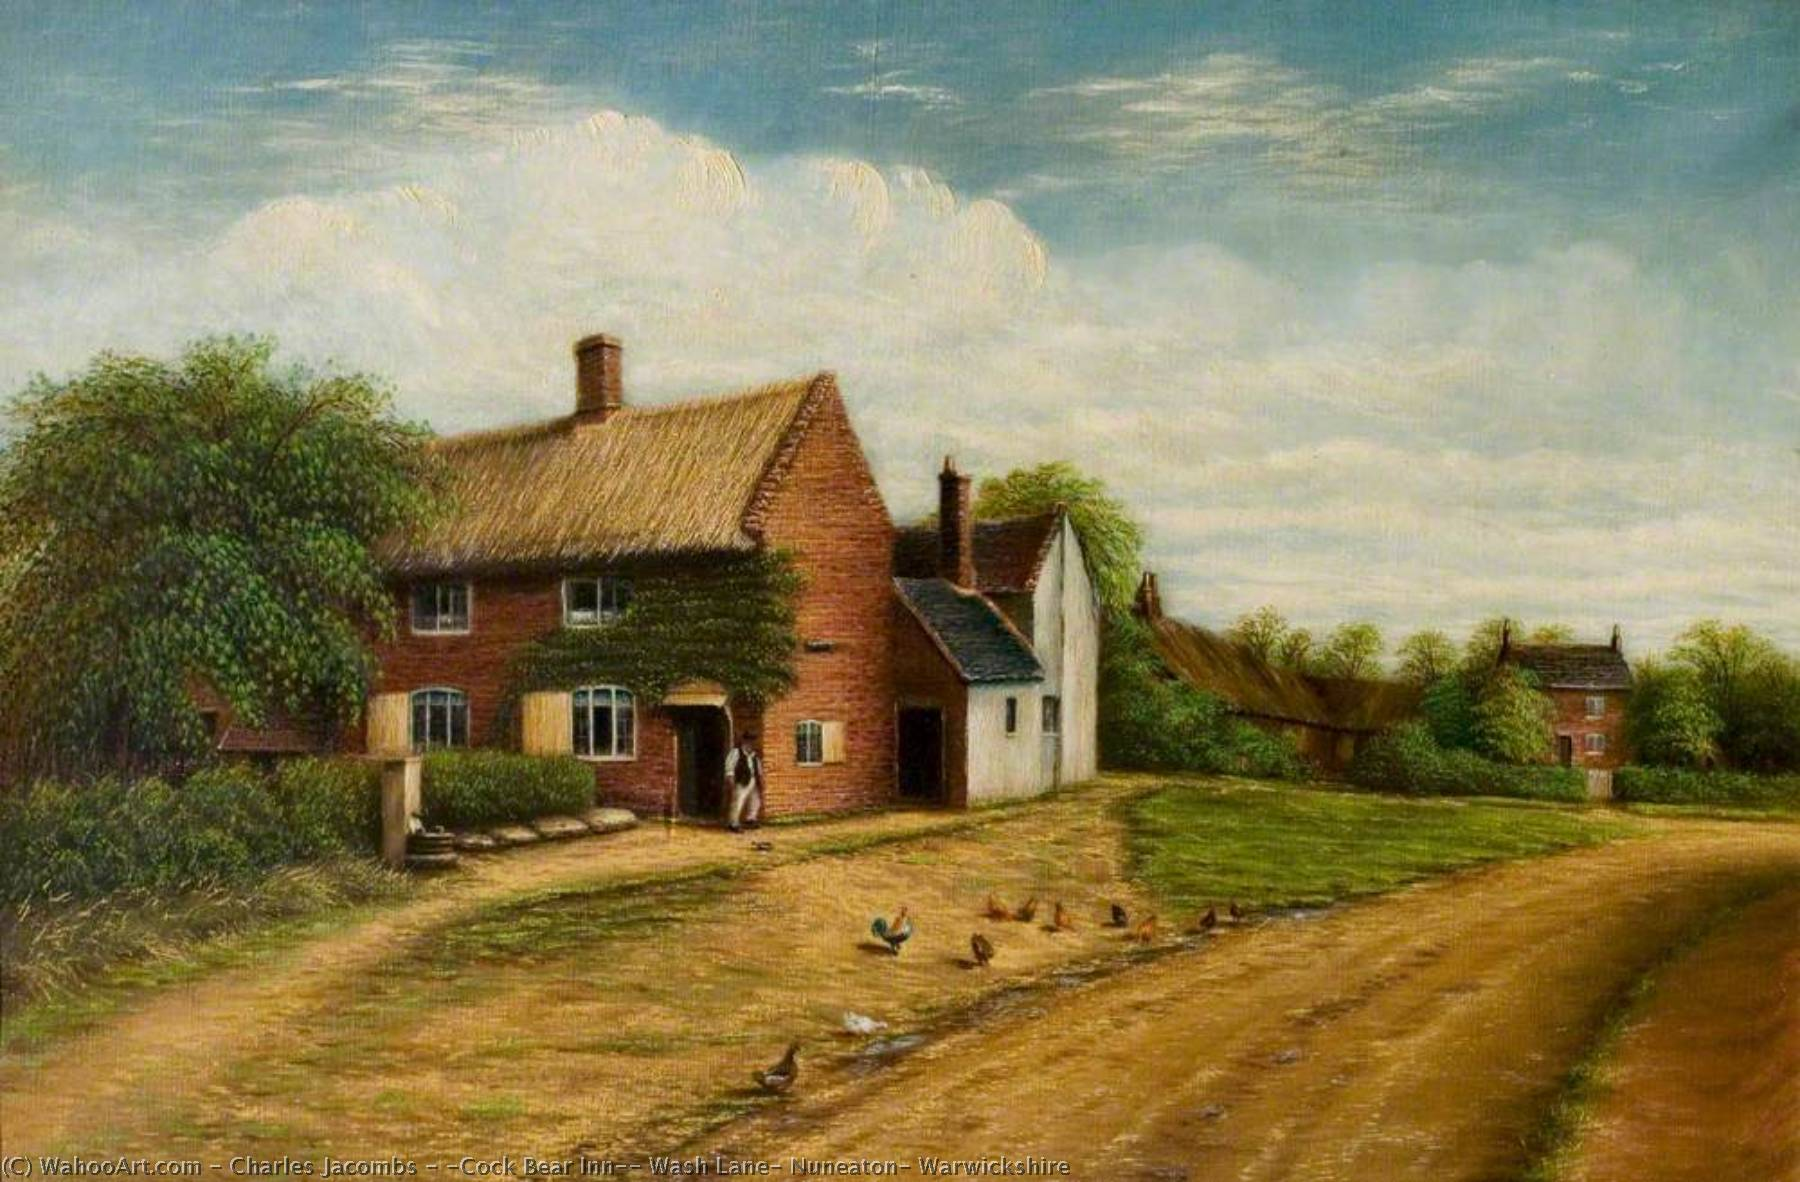 Order Museum Quality Copies | `Cock Bear Inn`, Wash Lane, Nuneaton, Warwickshire, 1923 by Charles Jacombs | WahooArt.com